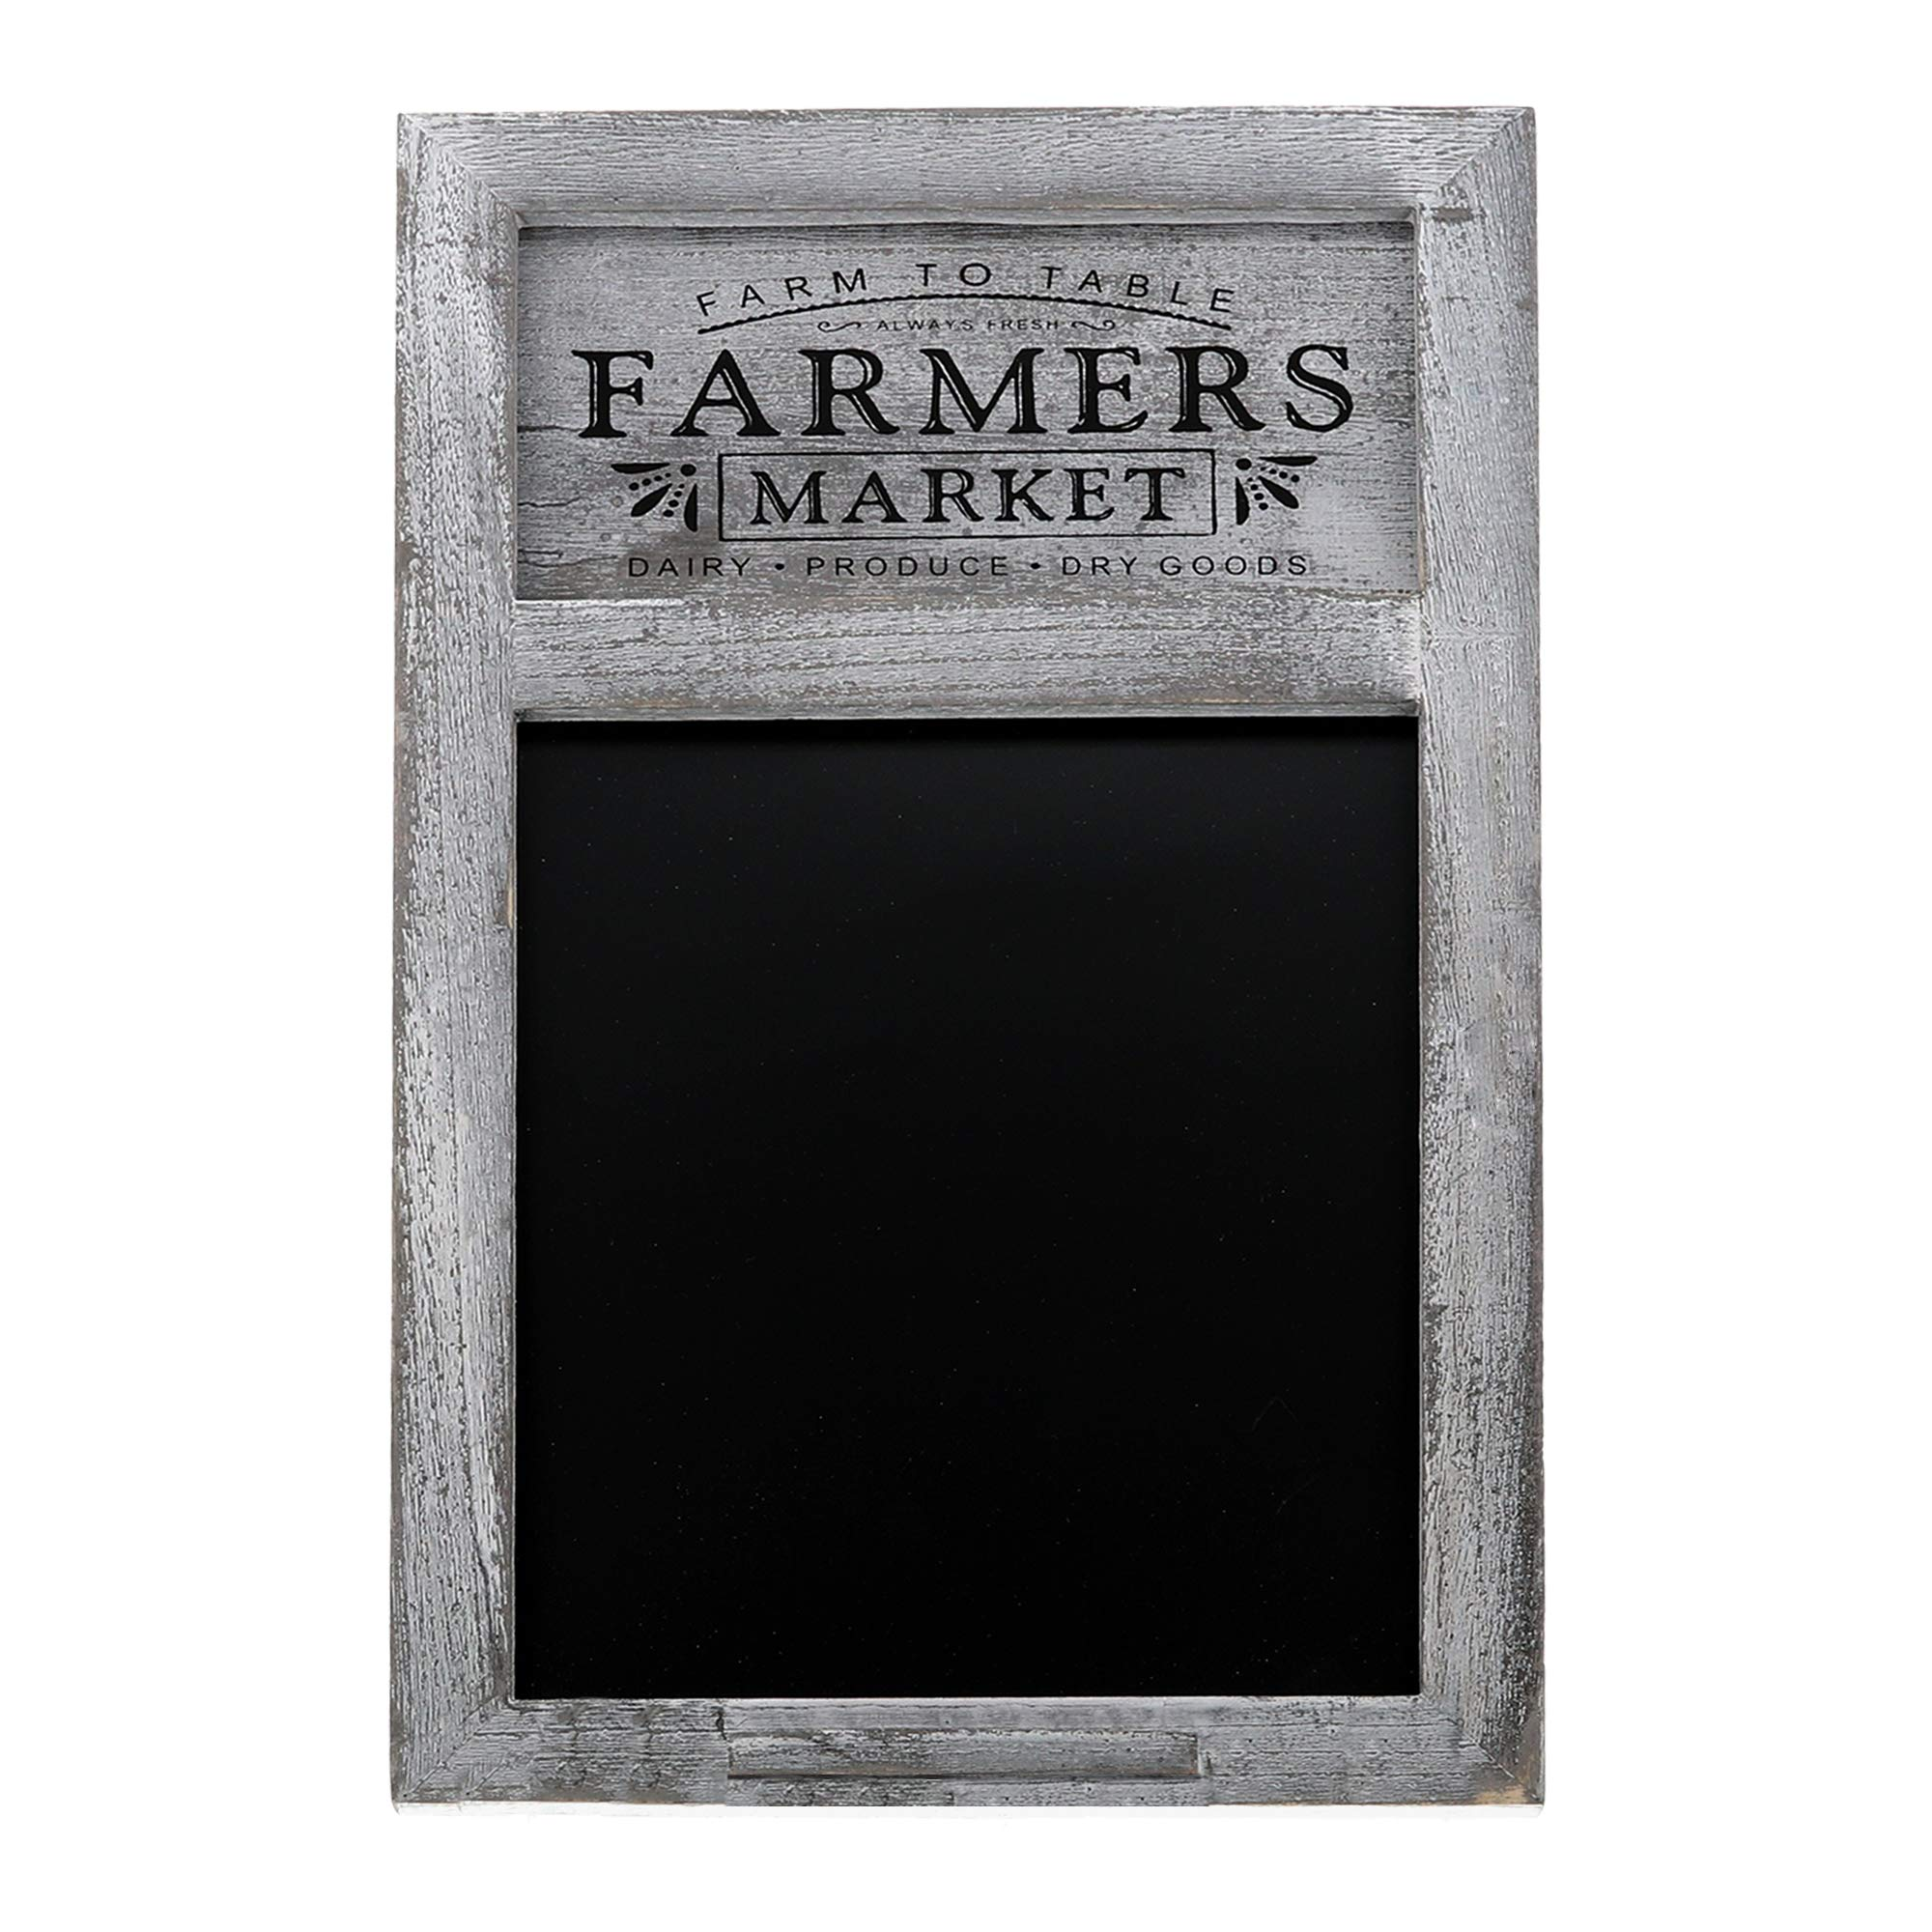 Barnyard Designs Rustic Farmers Market Chalkboard Sign - Decorative Chalkboard Display Board for Restaurant, Kitchen, Home, Weddings and More 17'' x 11''